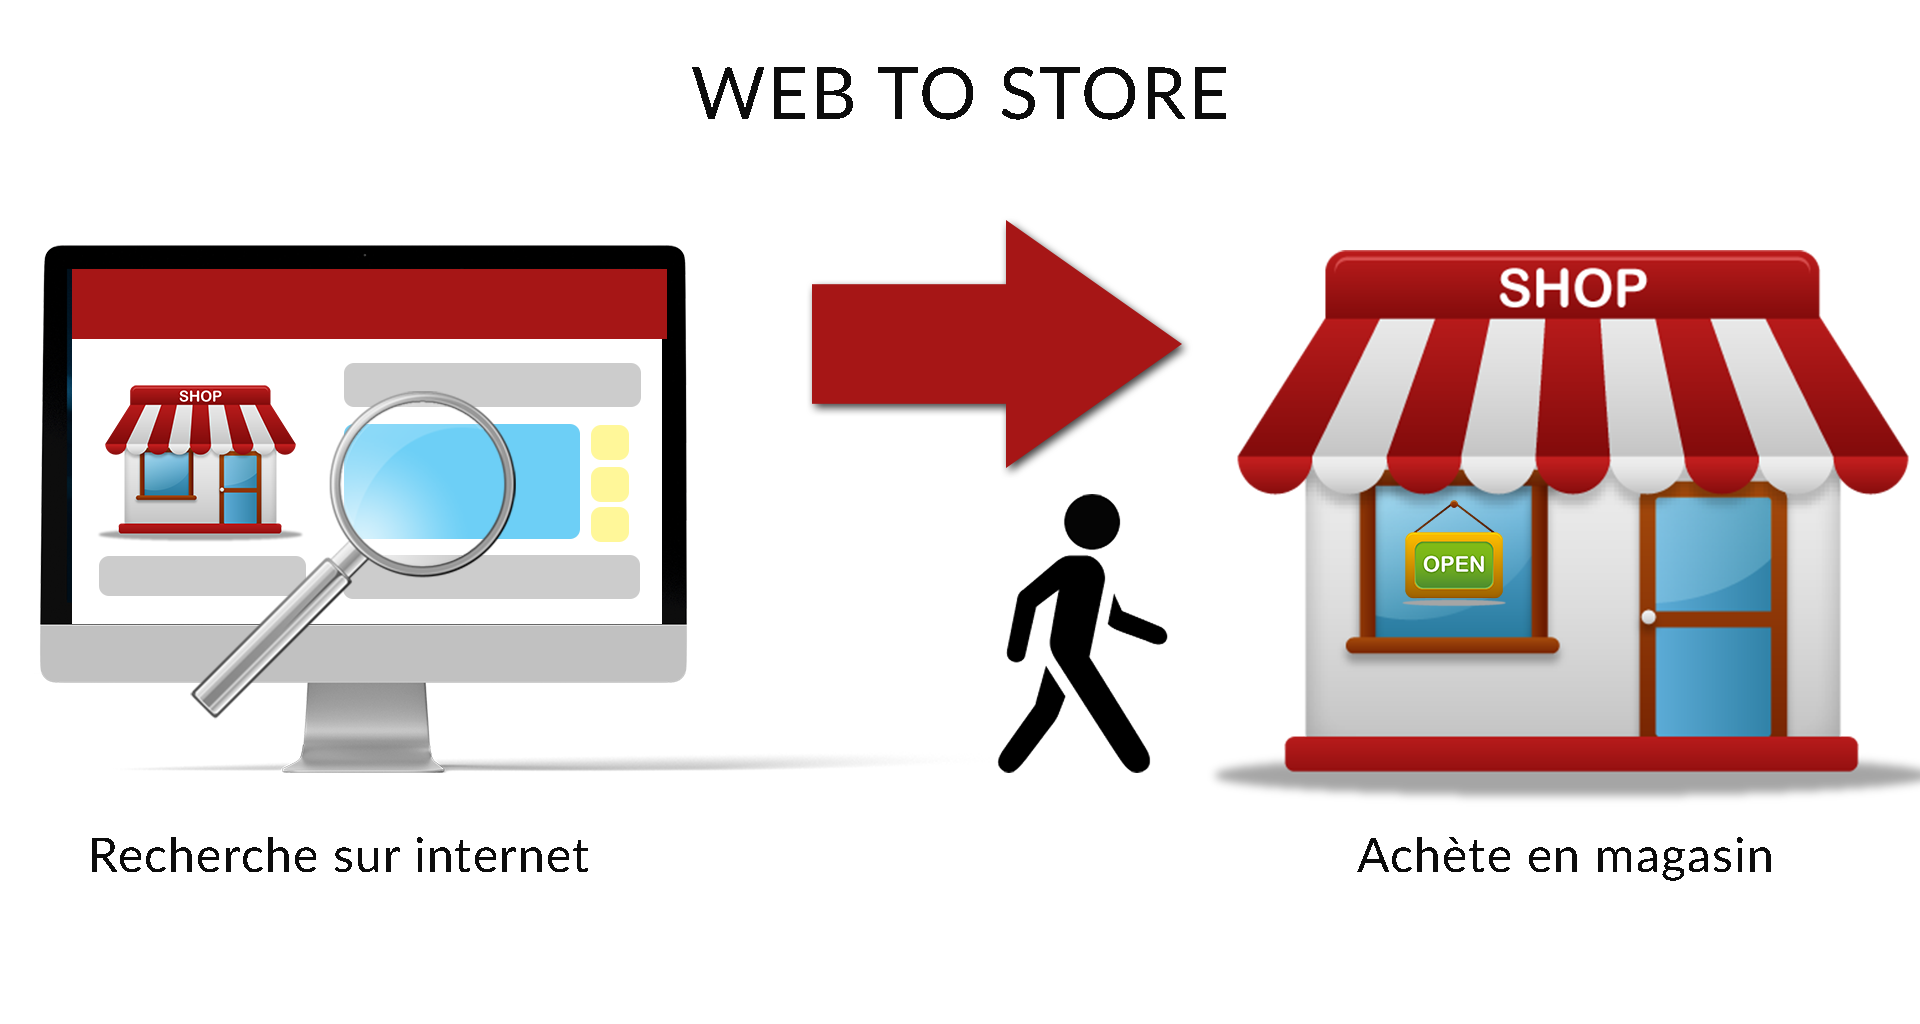 explication du web to store